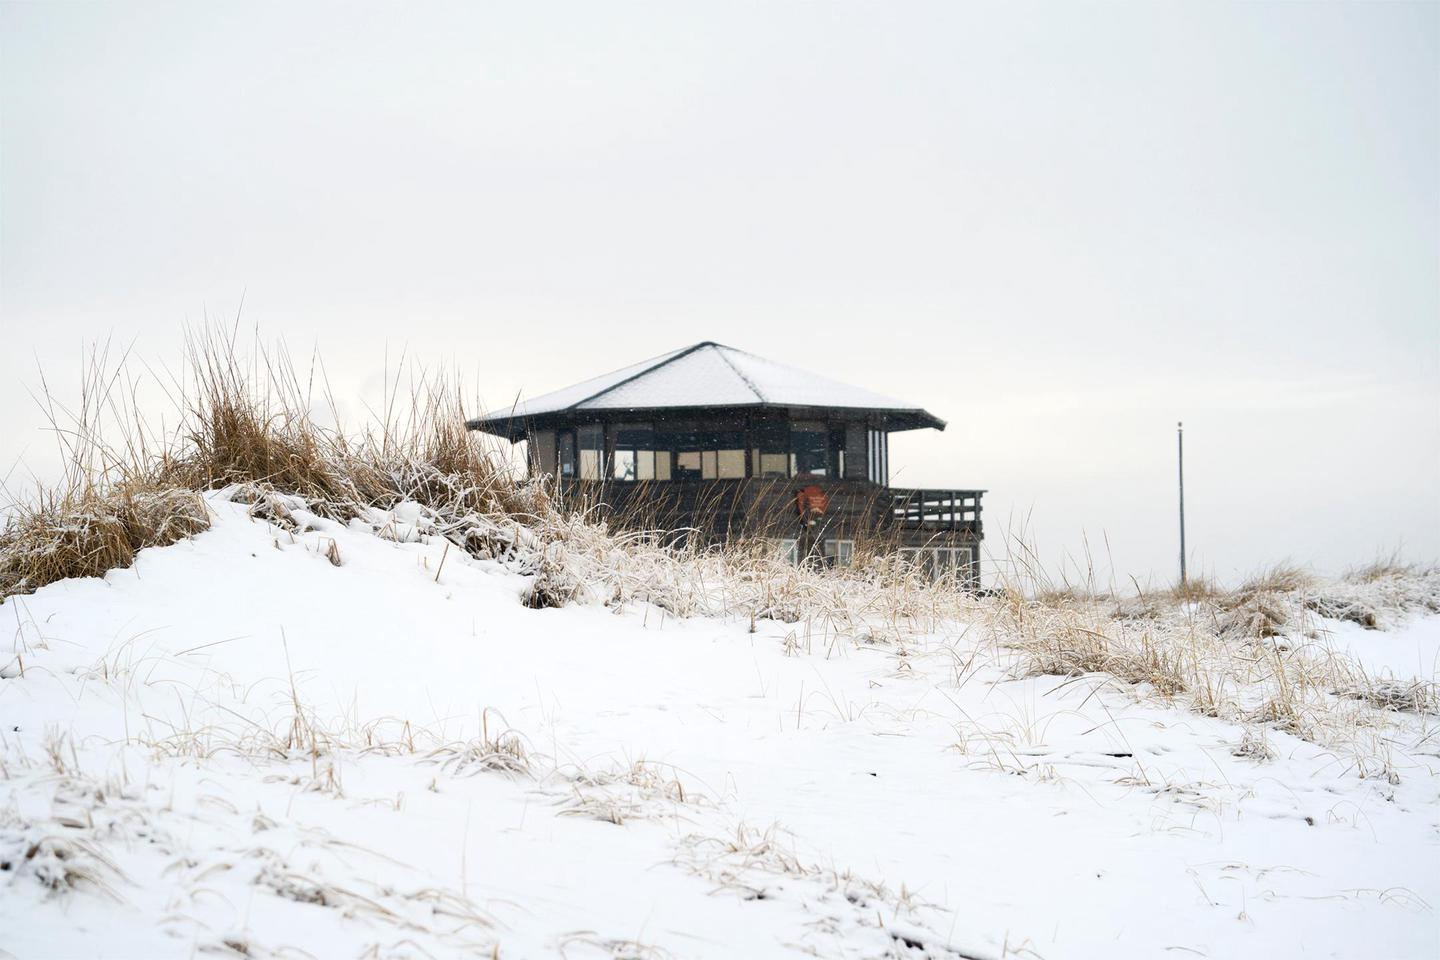 The Wilderness Visitor Center in winterThe Wilderness Visitor Center welcomes visitors to the Otis Pike High Dune Wilderness on the east end of Fire Island.